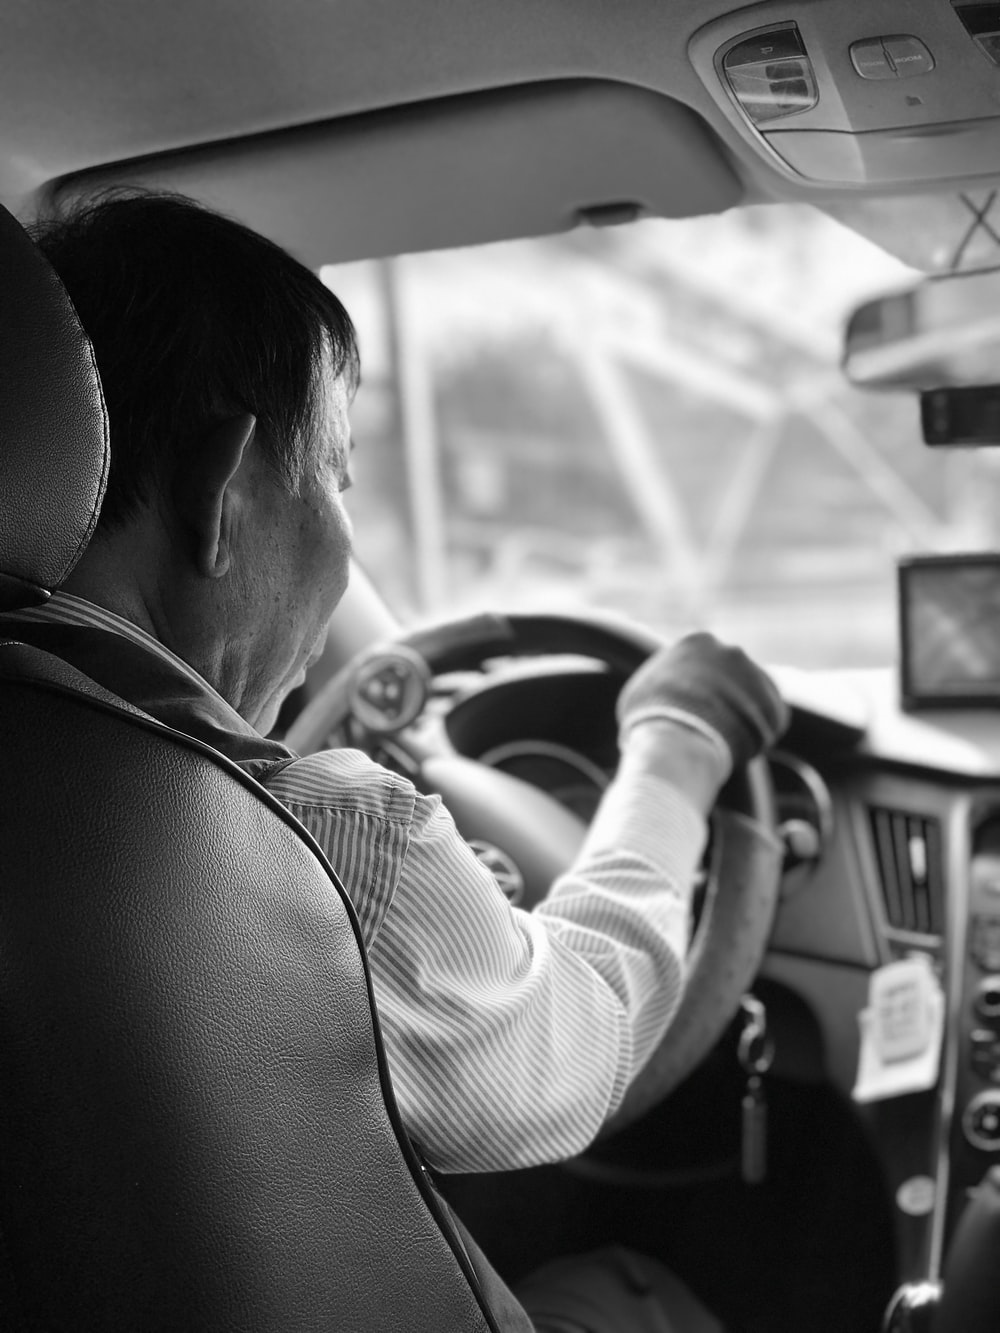 grayscale photography of man driving vehicle